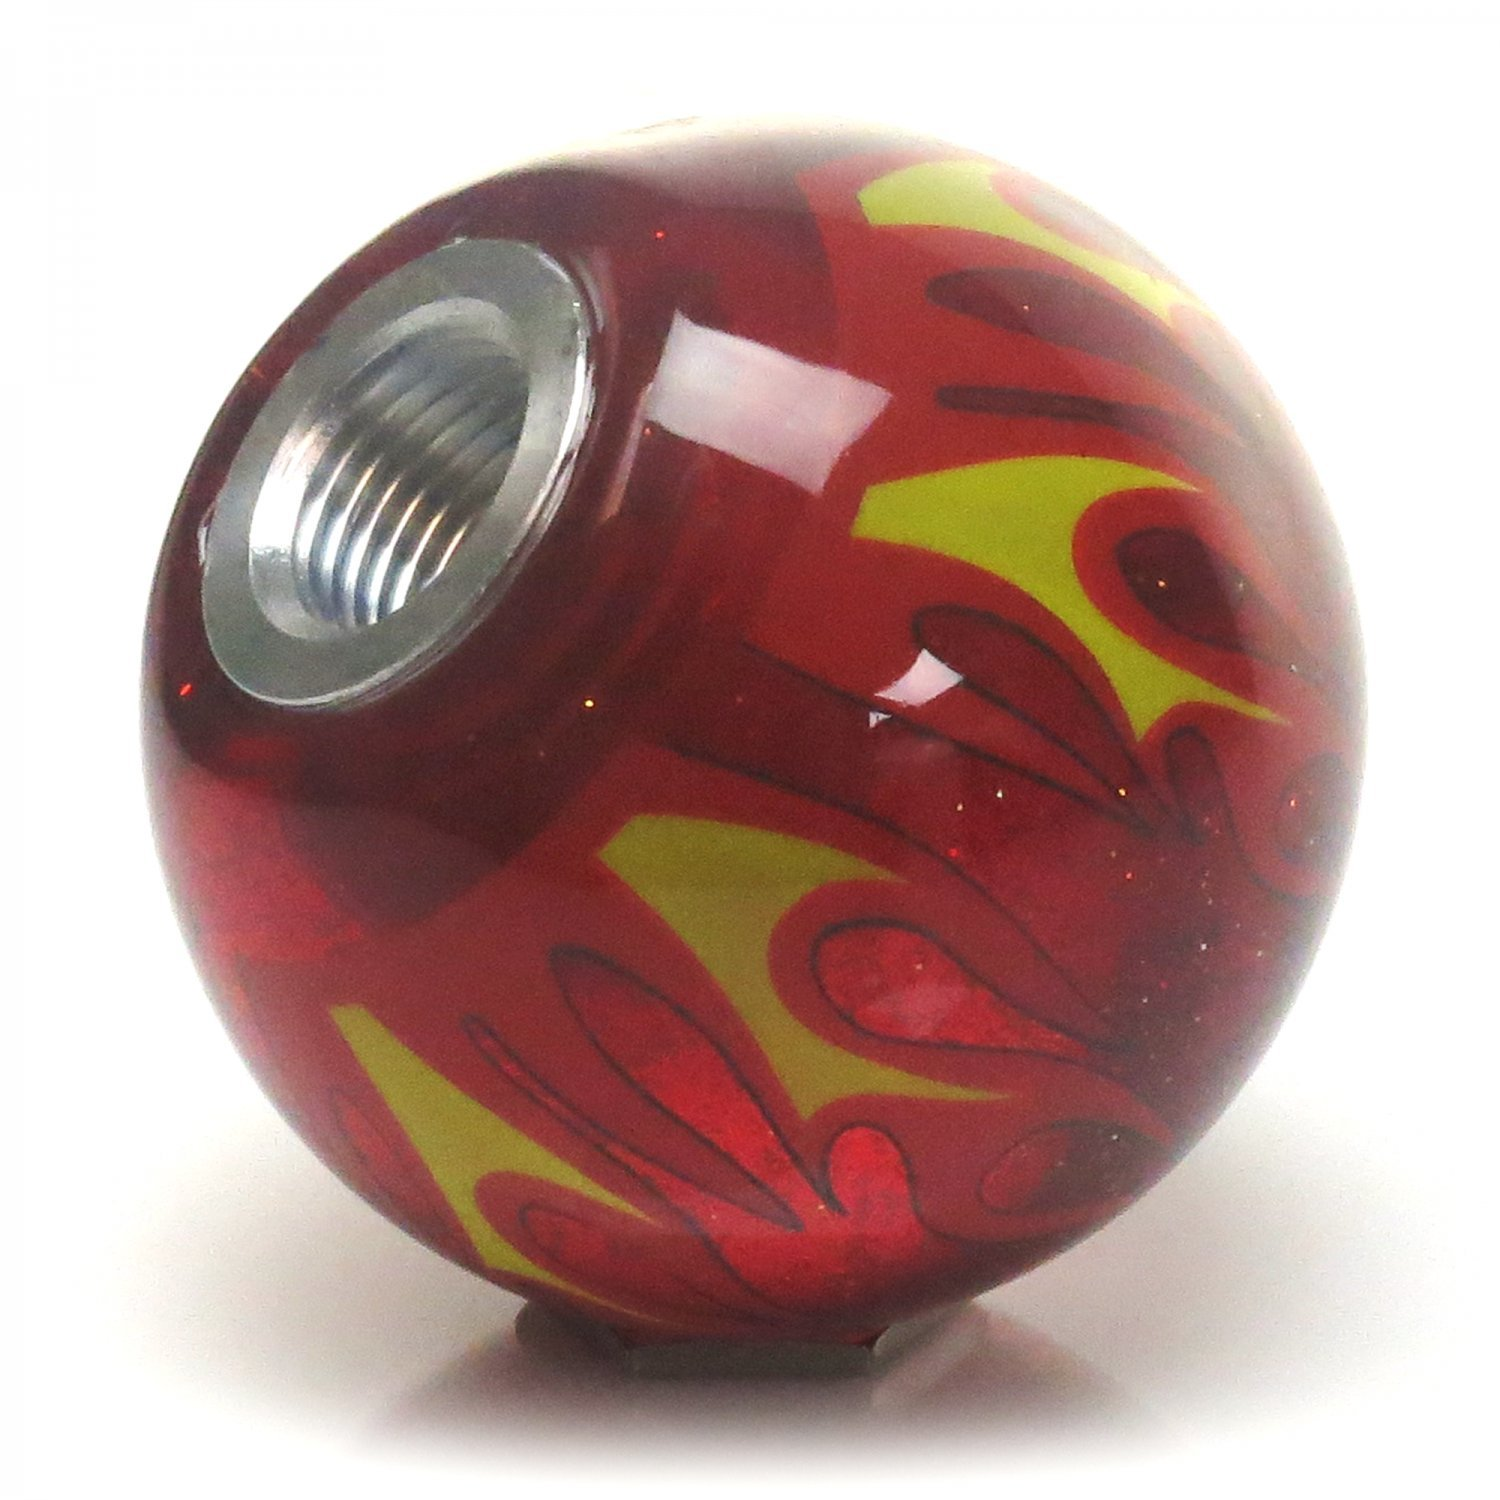 Pink Peace Sign American Shifter 239825 Red Flame Metal Flake Shift Knob with M16 x 1.5 Insert